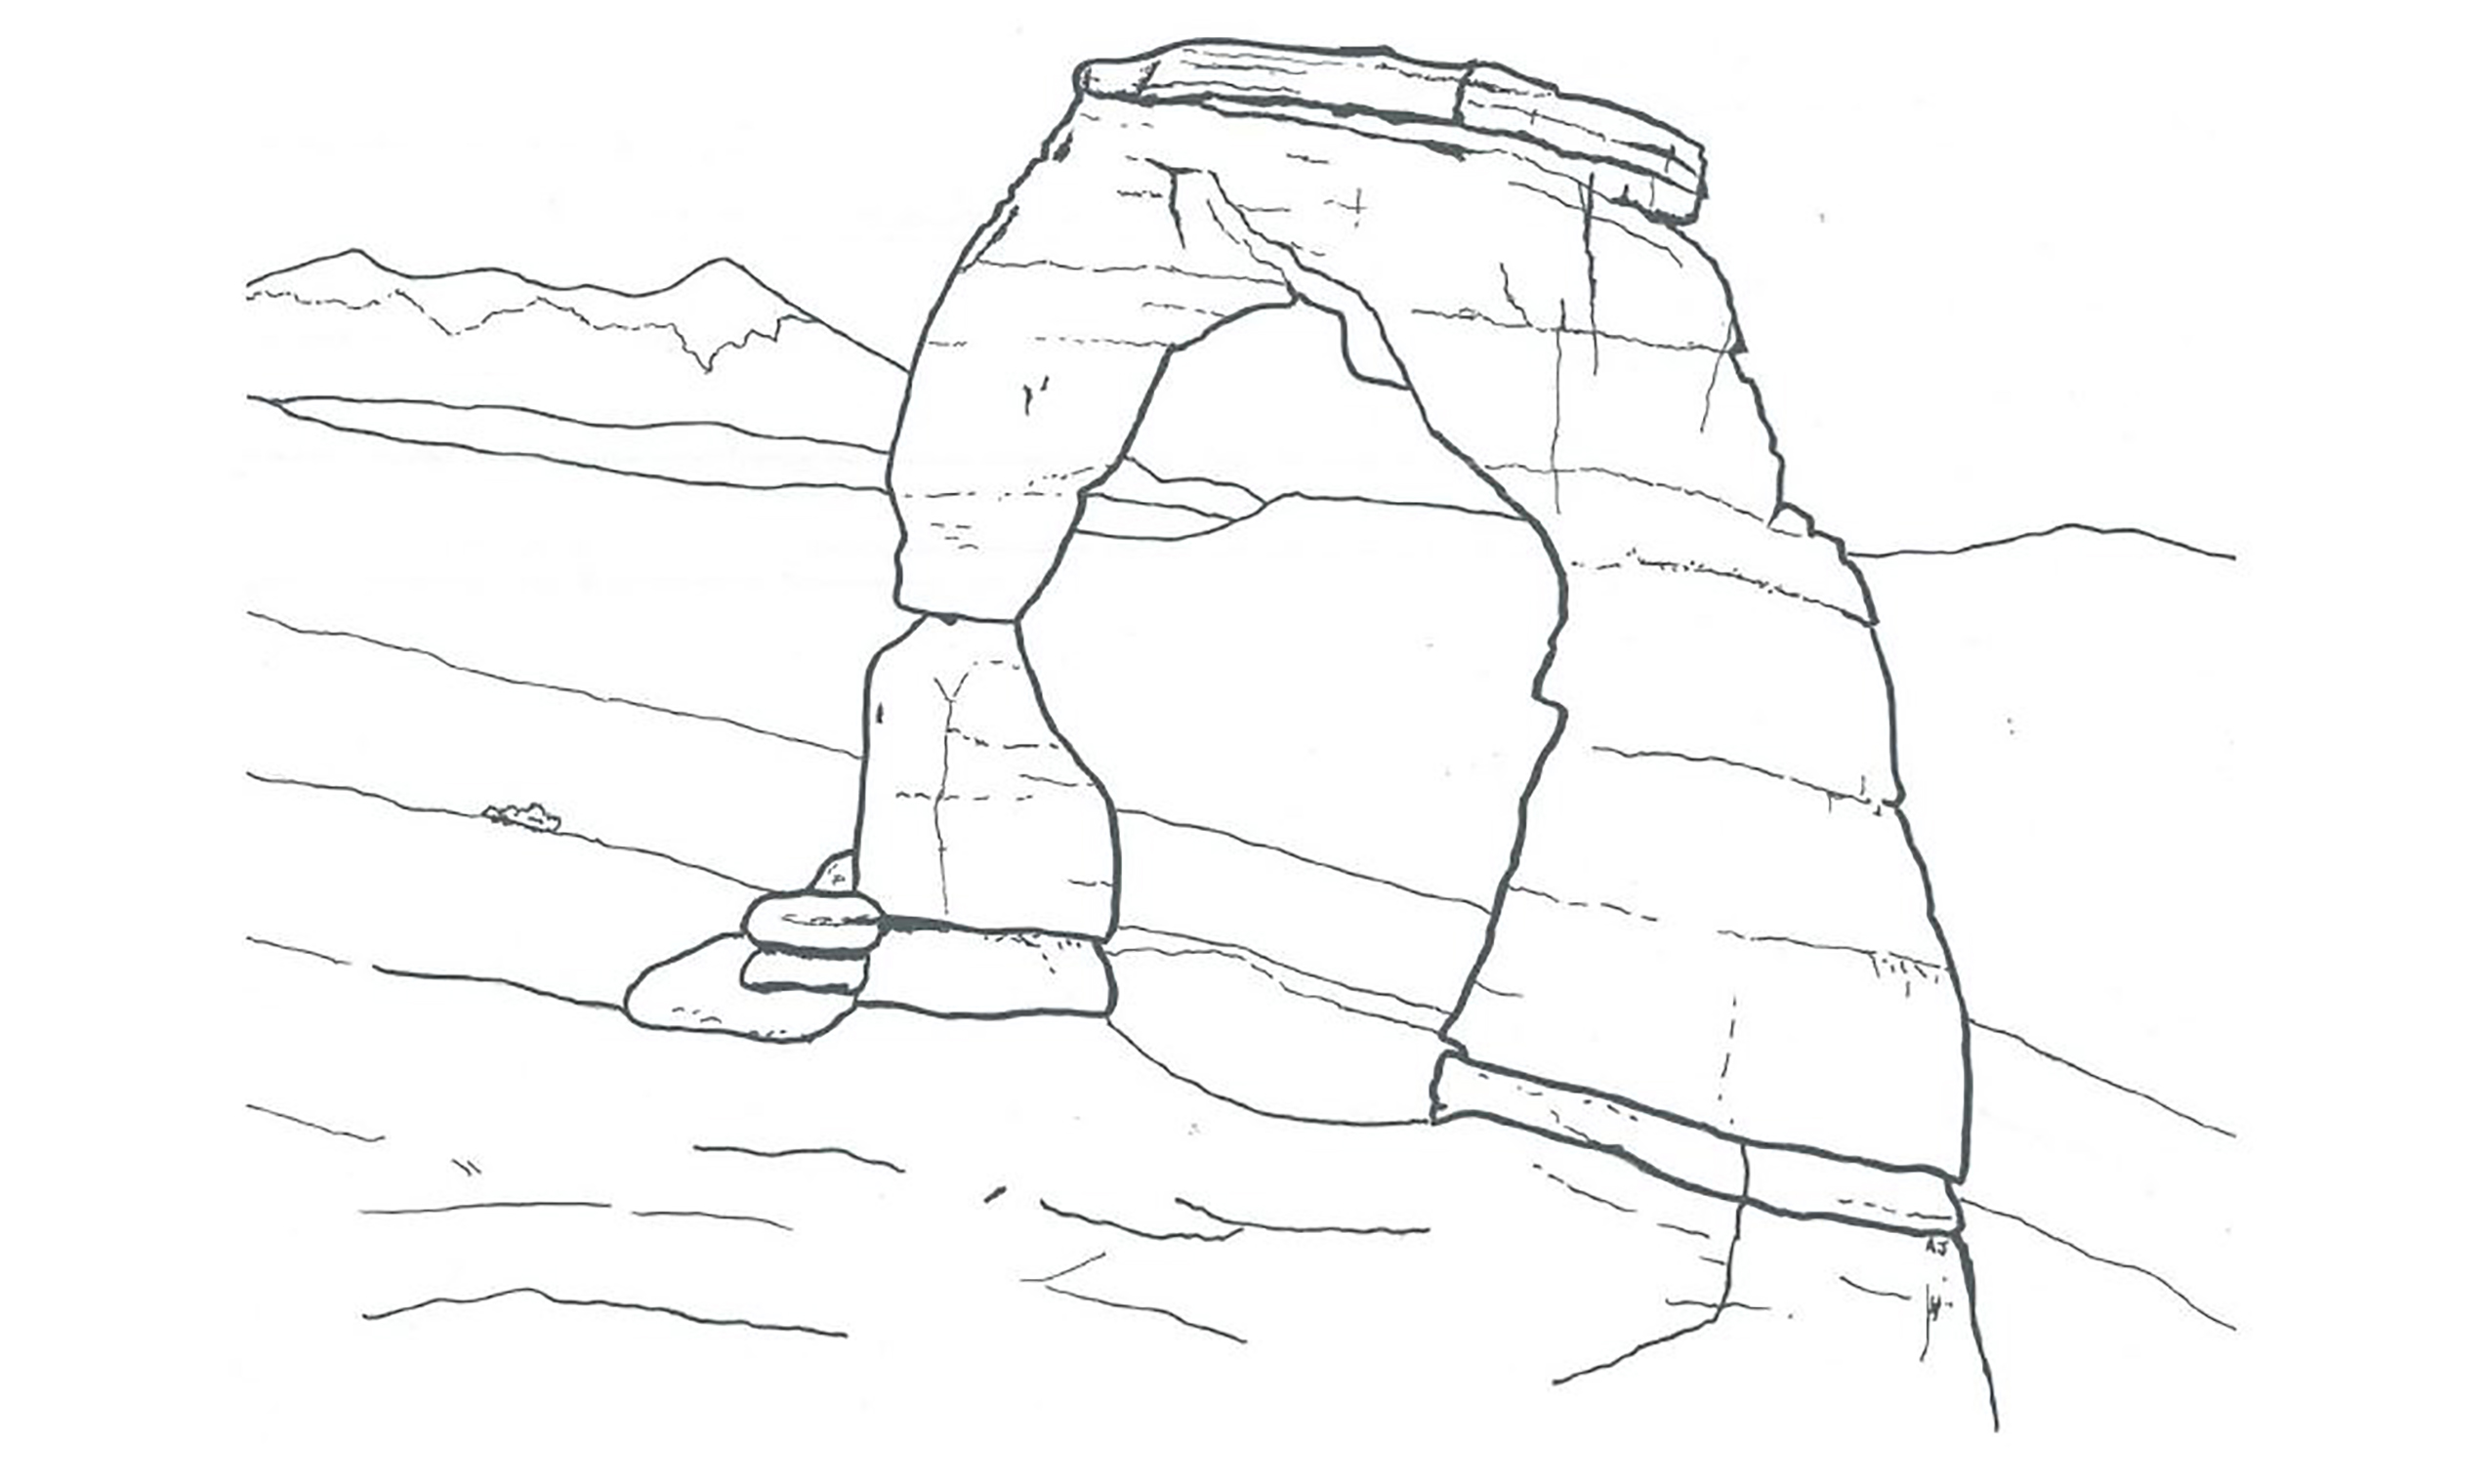 Coloring Pages - Arches National Park (U.S. National Park Service)